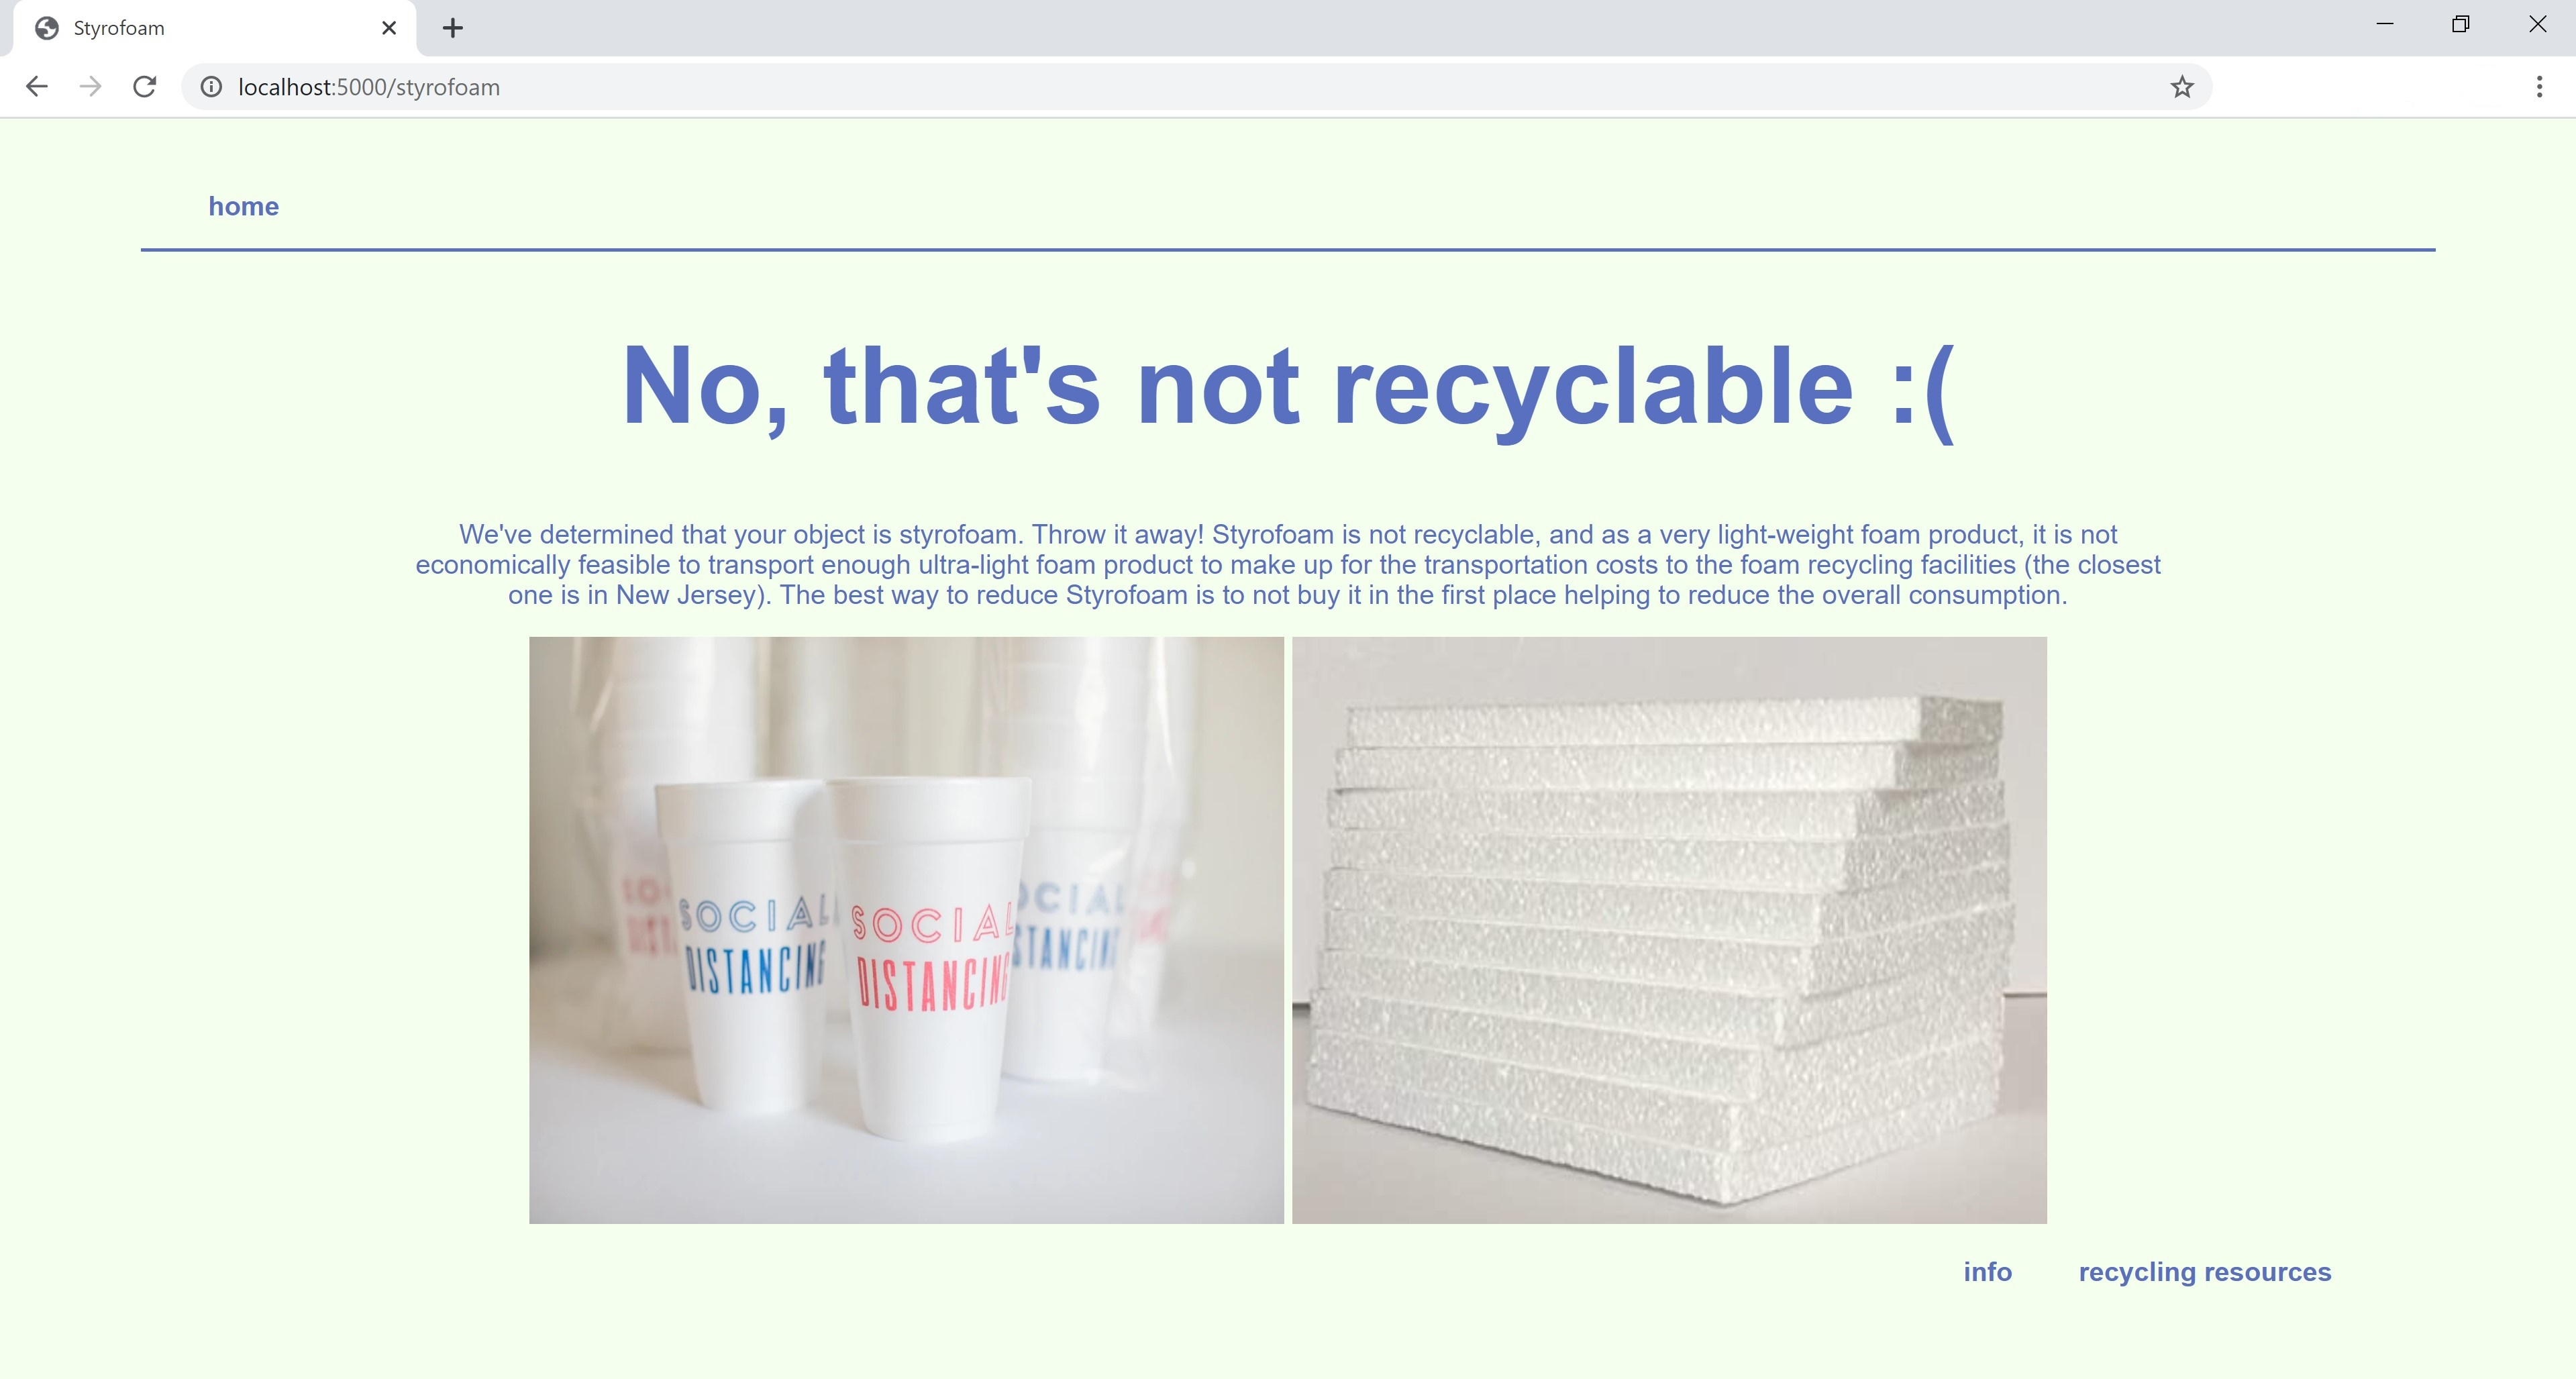 screenshot of Is This Recyclable? explaining why styrofoam is not recyclable